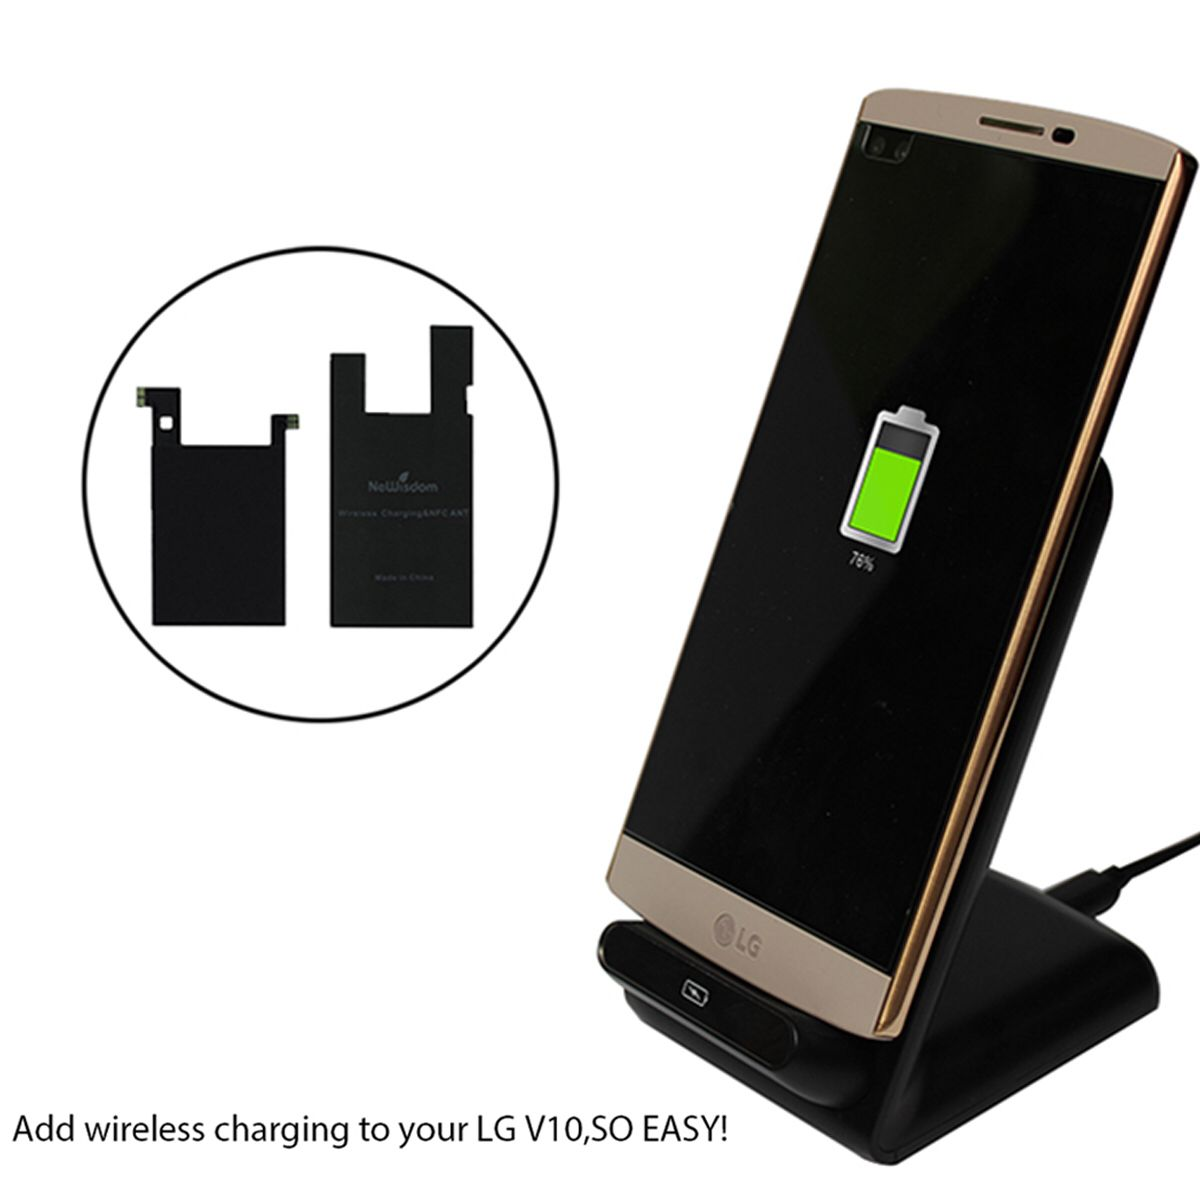 Add Wireless Charging To Your LG V10 With NeWisdom V10 Qi